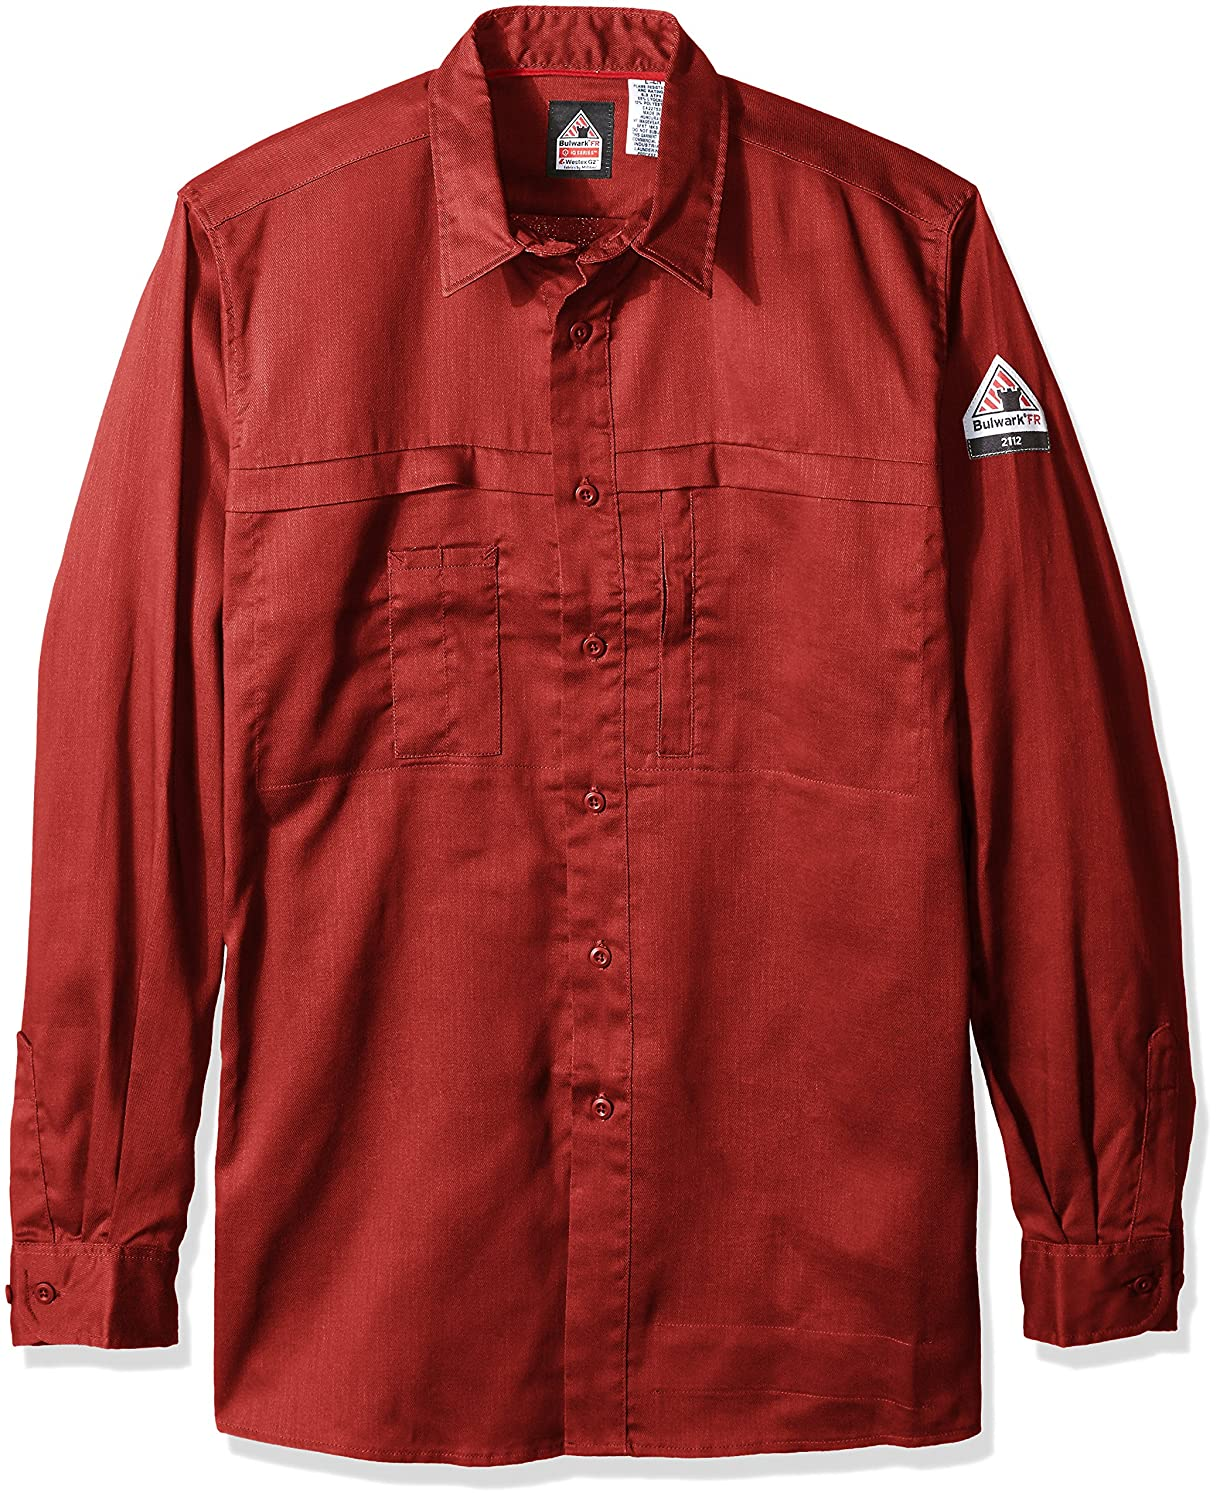 84cedd5972a Amazon.com  Bulwark Men s Iq Series Comfort Woven Concealed Pocket Shirt Big  and Tall  Clothing